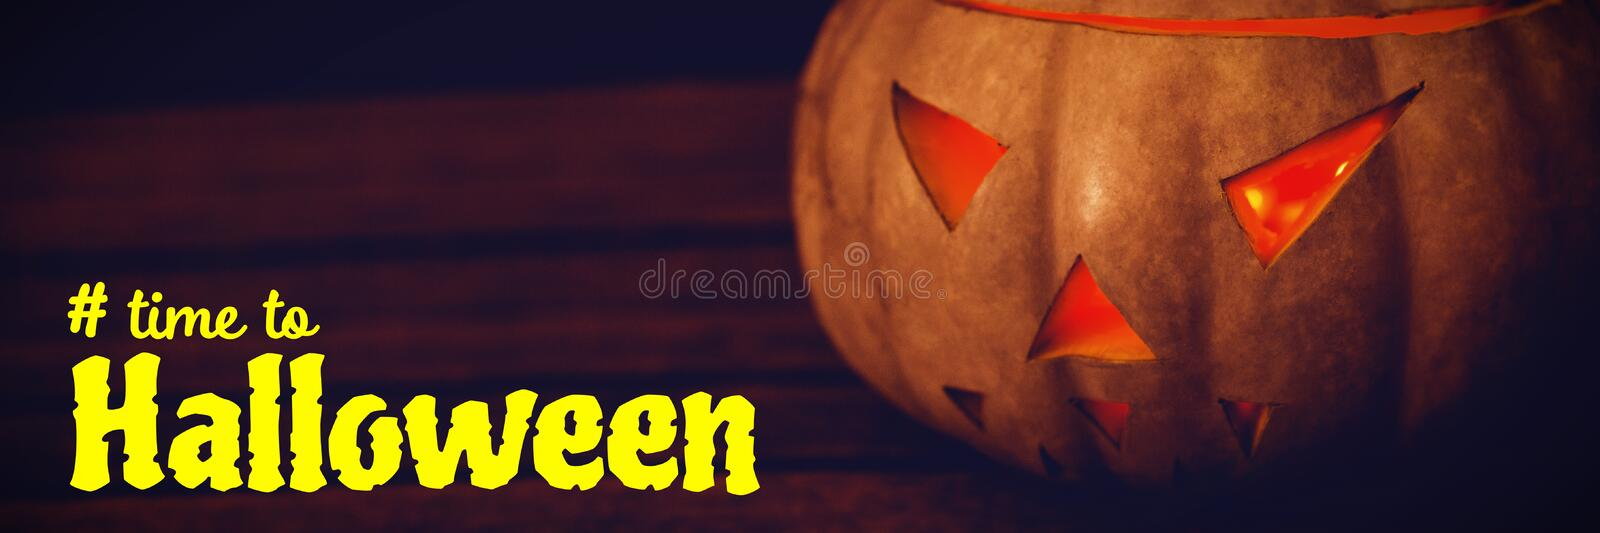 Composite image of digital image of time to halloween text. Digital image of time to Halloween text against close up of illuminated jack o lantern on table royalty free stock photo